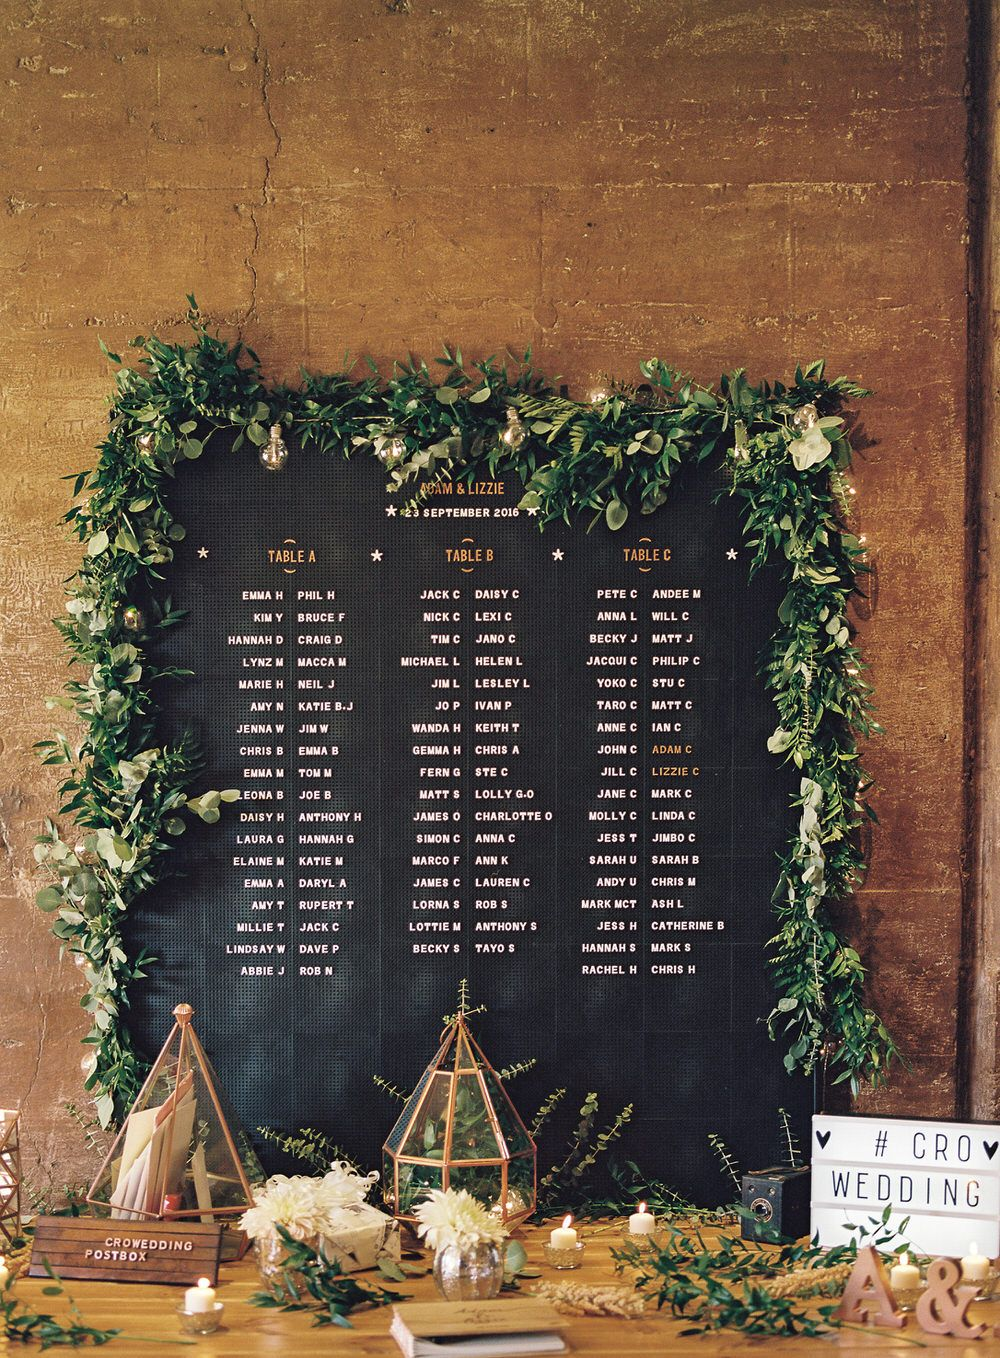 #crowedding Rose & Grey peg board table plan - Rose gold & blush pink outdoor wedding at Elmore Court. Anna Campbell gown, Cad & The Dandy Suit. Photography - Ann-Kathrin Koch. Film - WE ARE THE CLARKES.